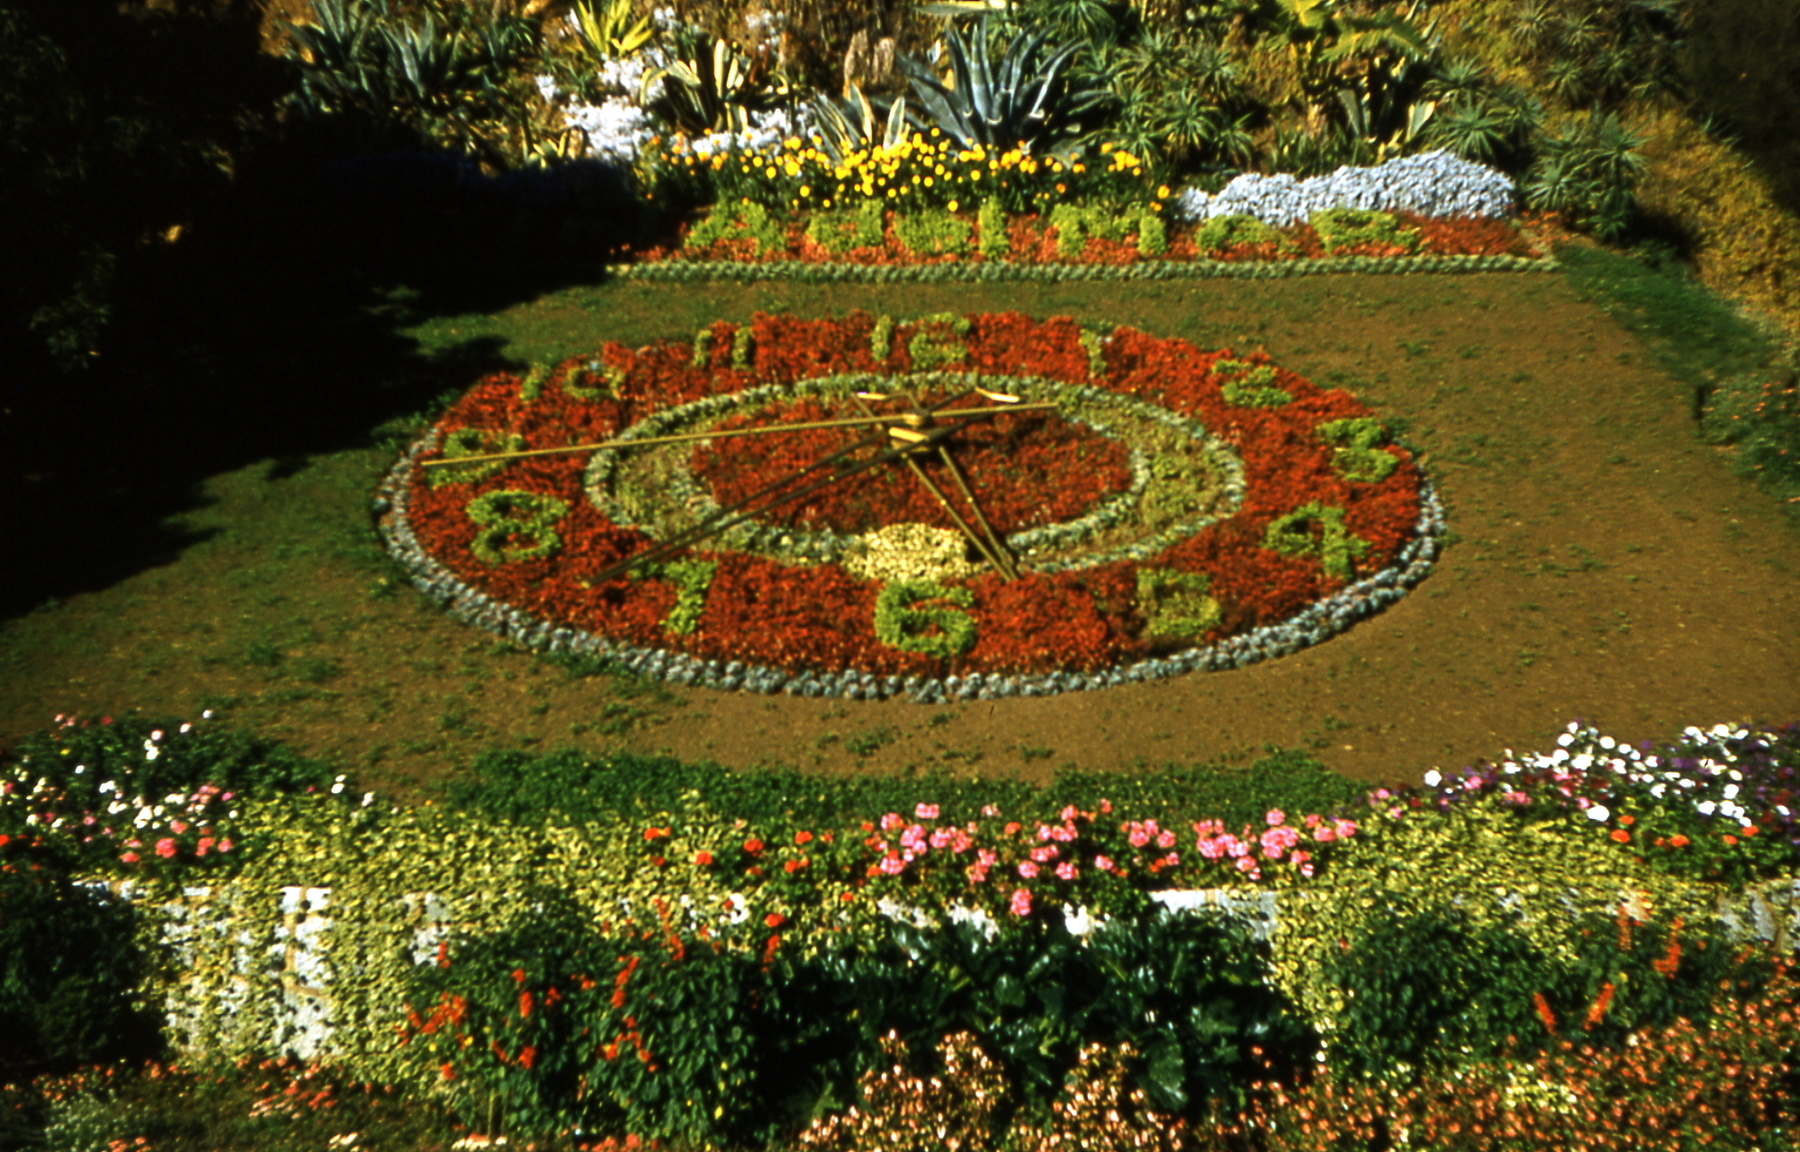 Enterreno - Fotos históricas de chile - fotos antiguas de Chile - Reloj de Flores de Viña del Mar en 1963